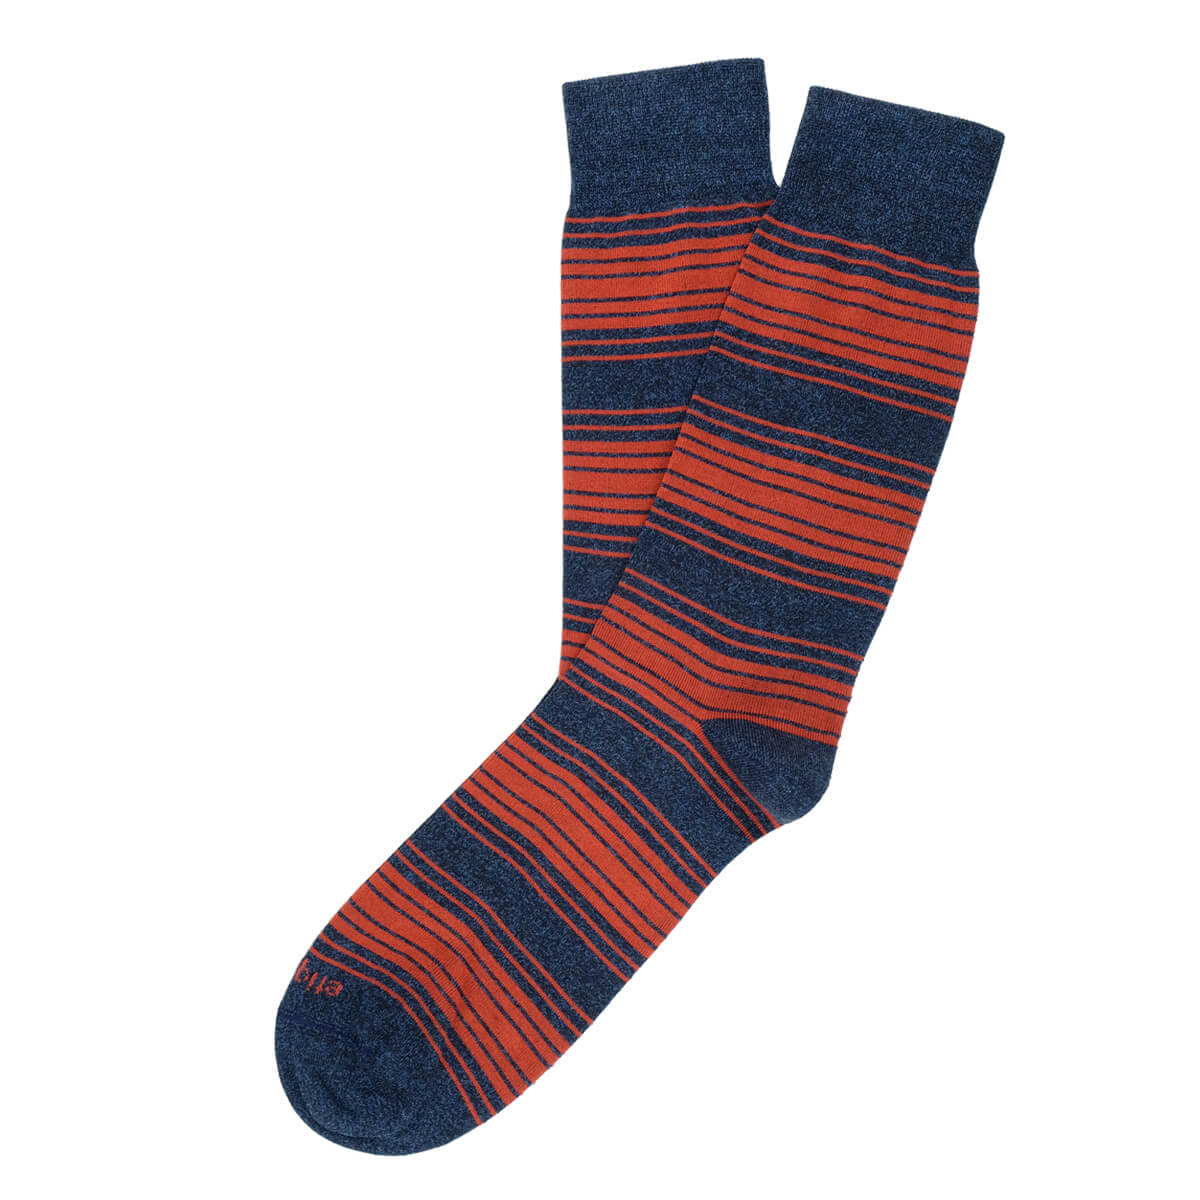 Mens Socks - Tokyo Stripes Men's Socks - Blue⎪Etiquette Clothiers